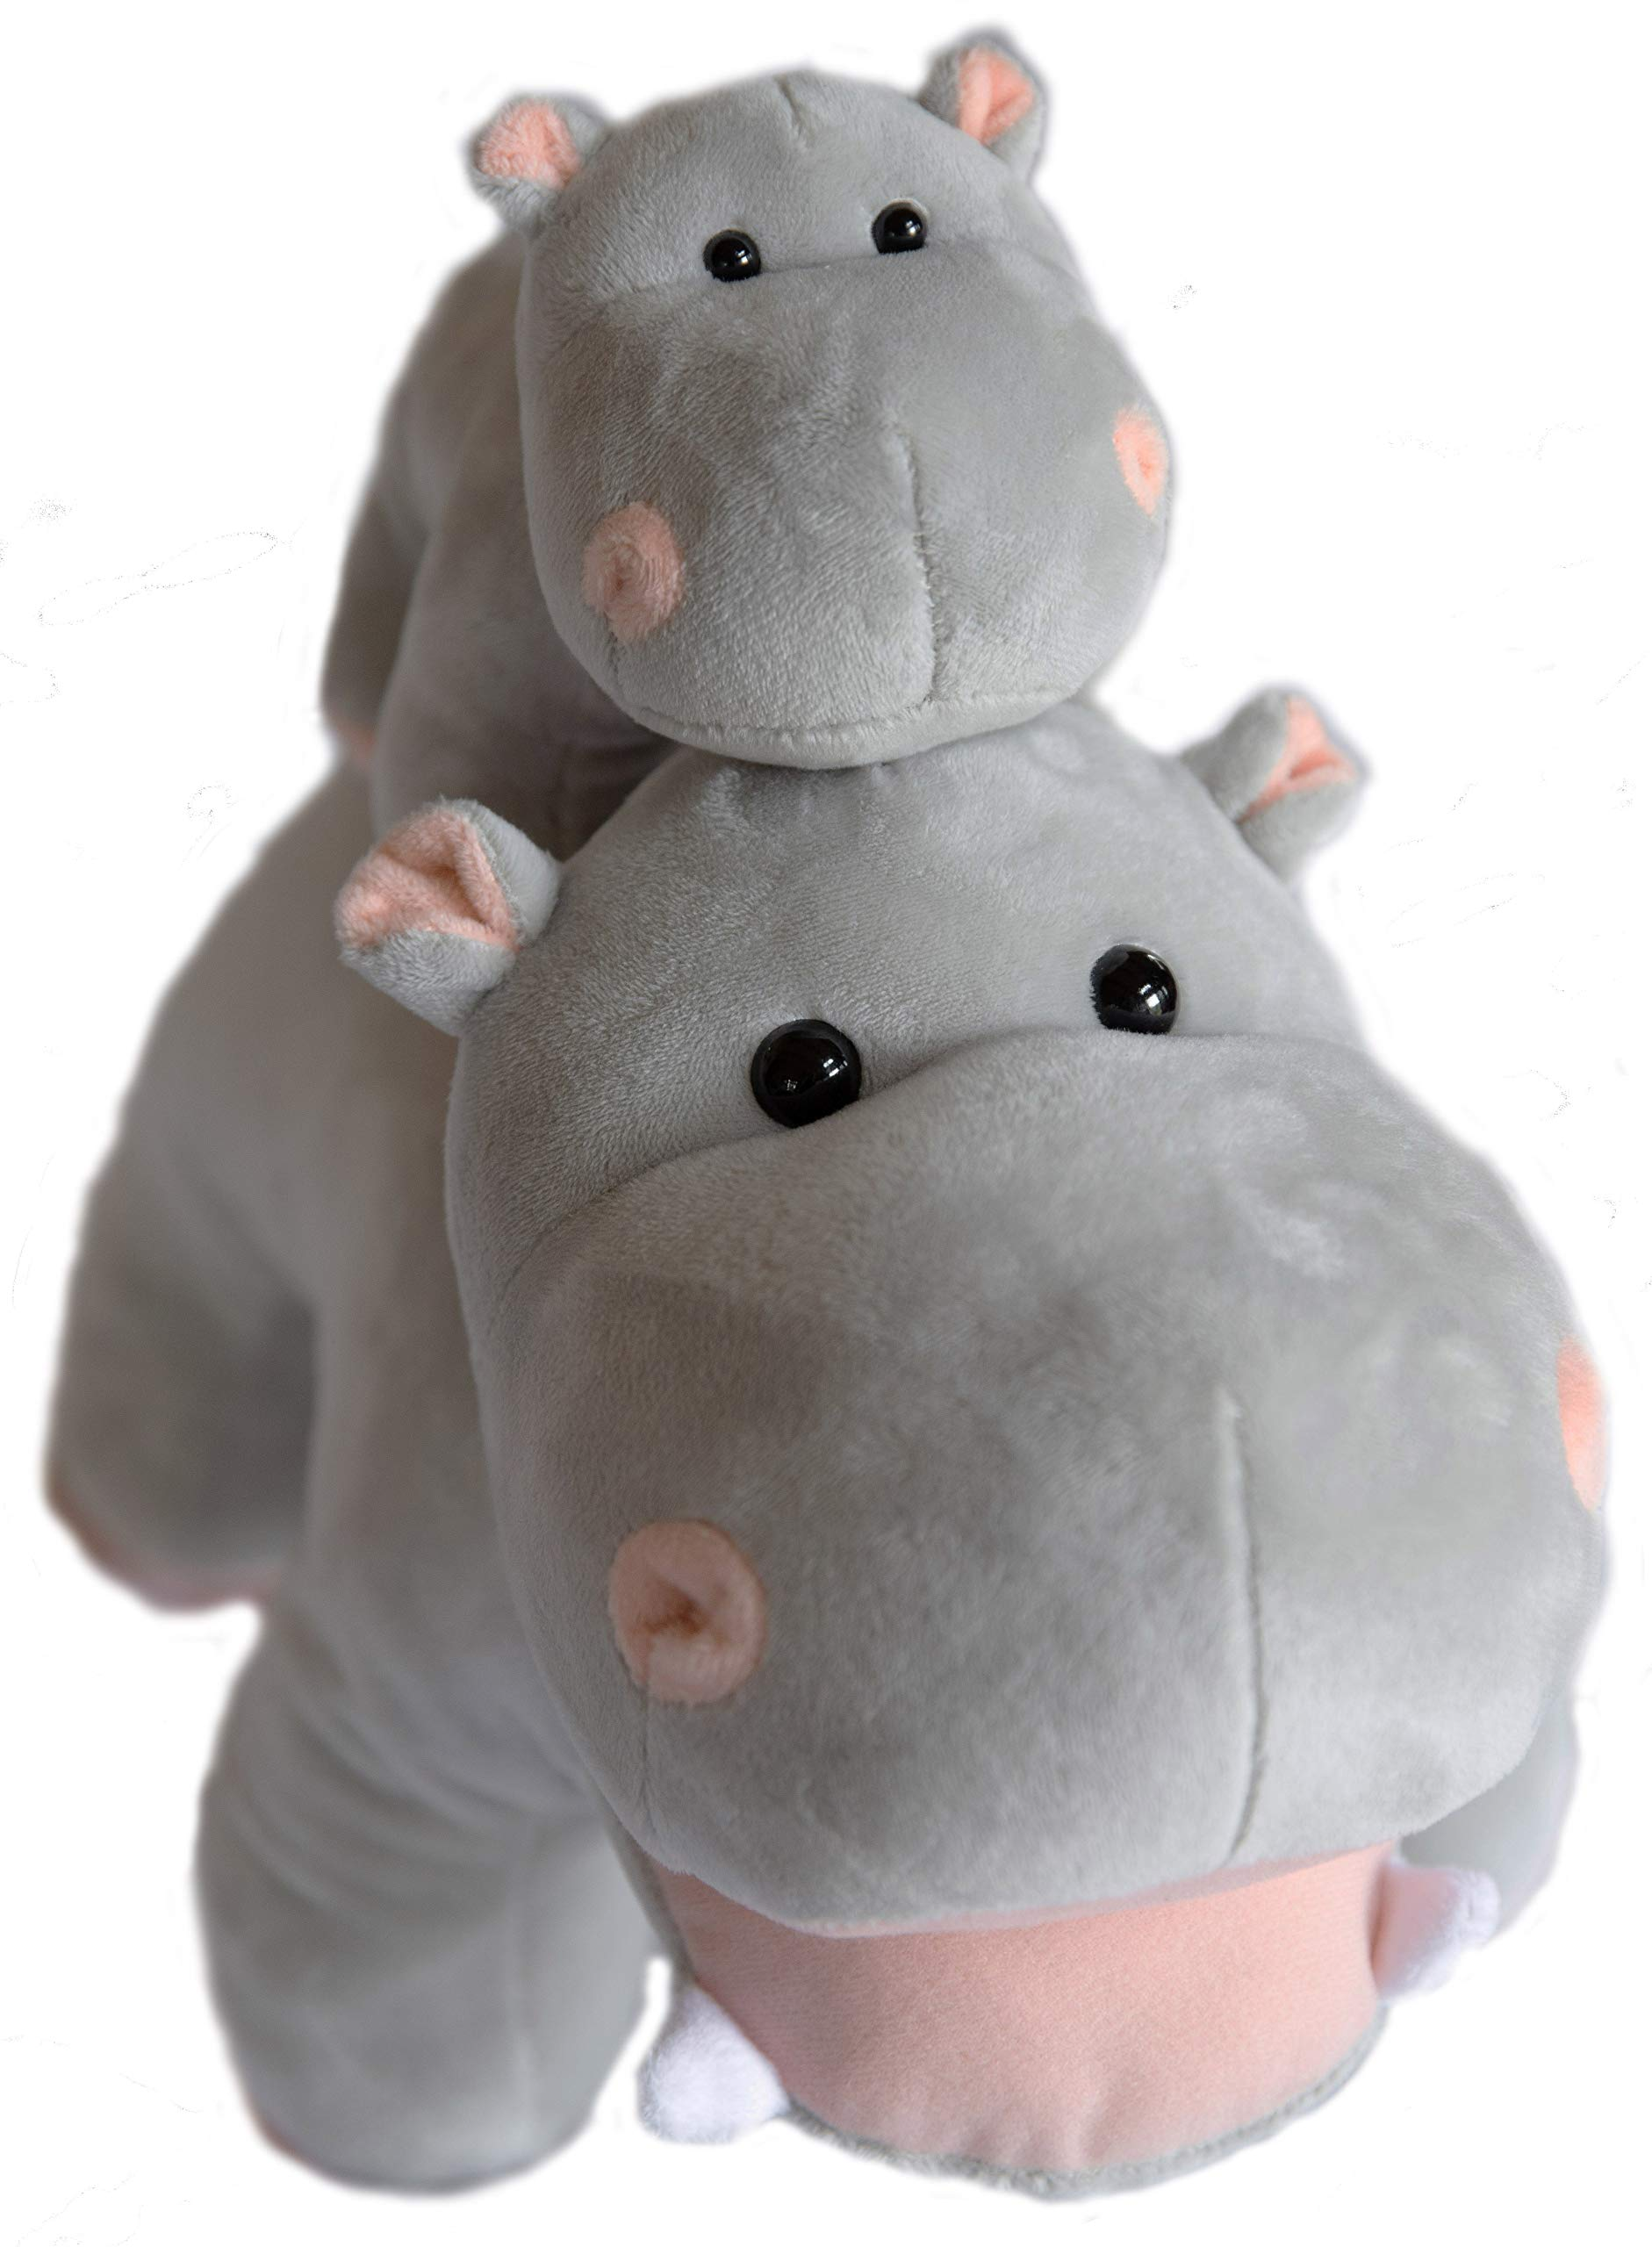 Exceptional Home Hippo Stuffed Animals Oh So Soft Plush Mother Baby Hippos Hippopotamus Toy Set by Exceptional Home